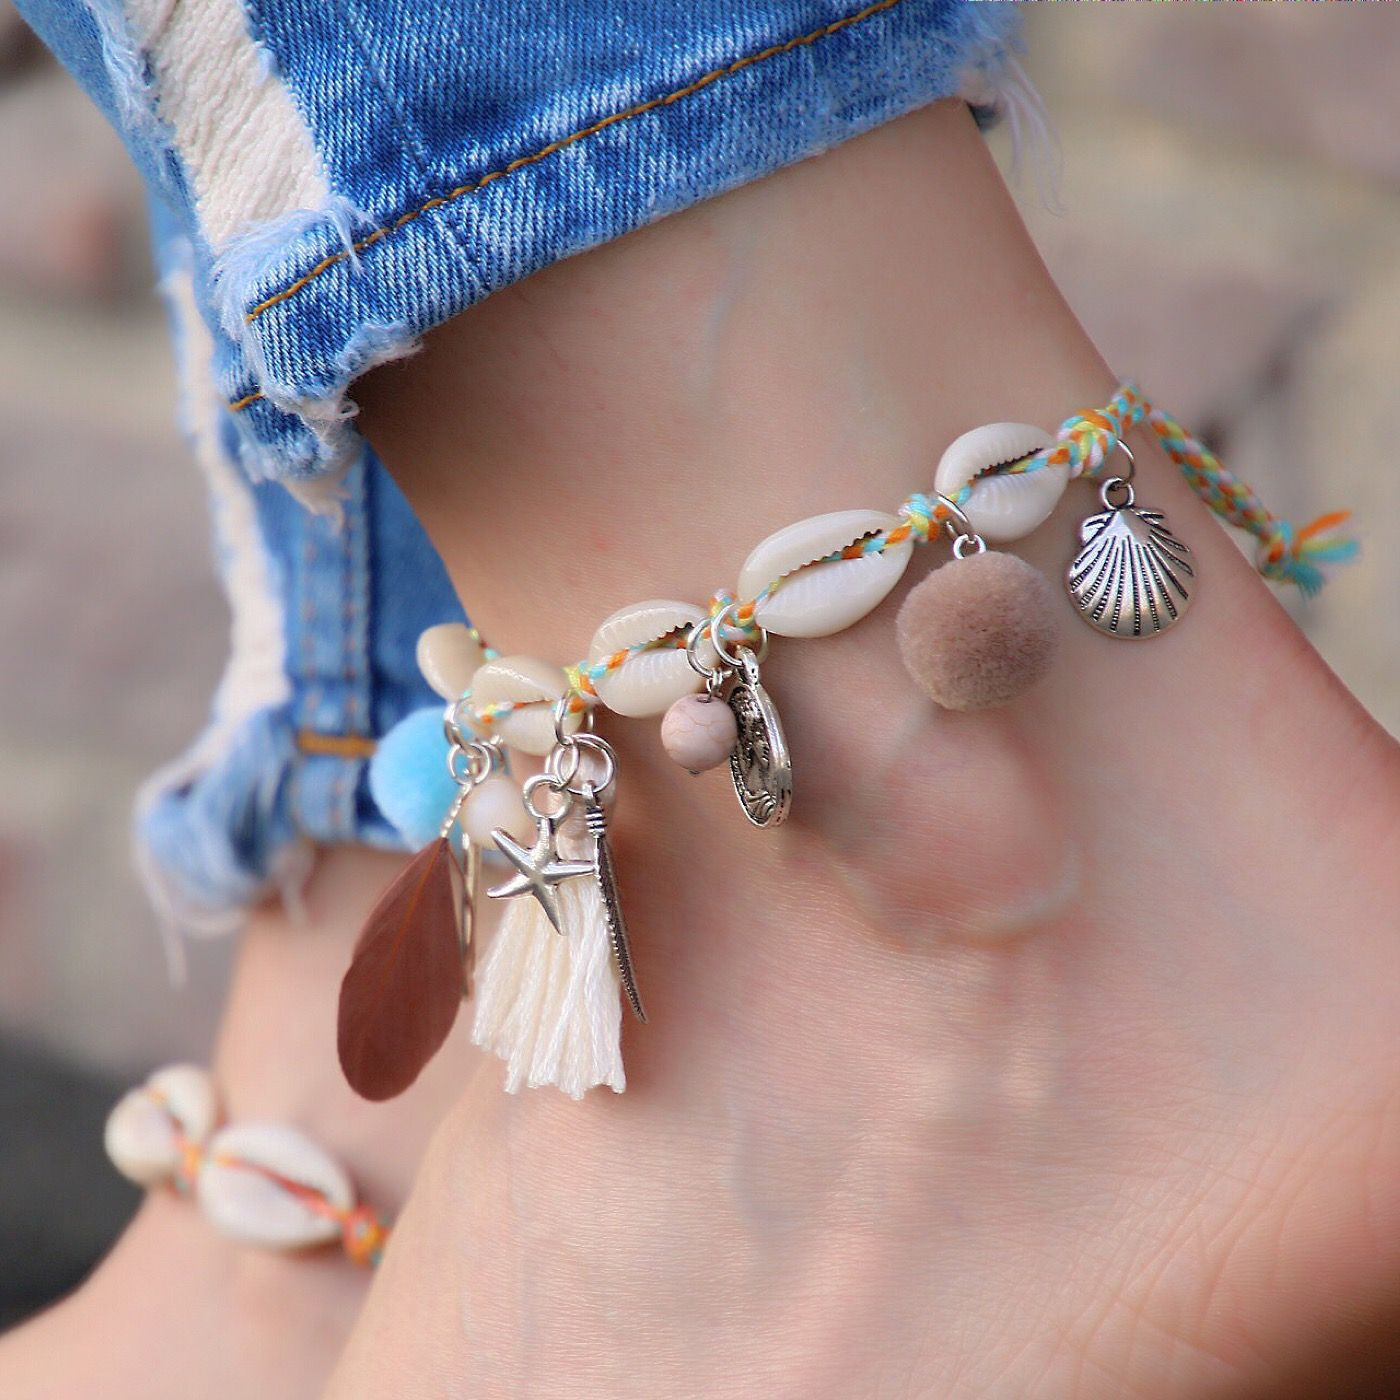 nautical bracelets starfish bracelet beach anklet ankle bling turquoise sterling silver anklets and seashell jewelry